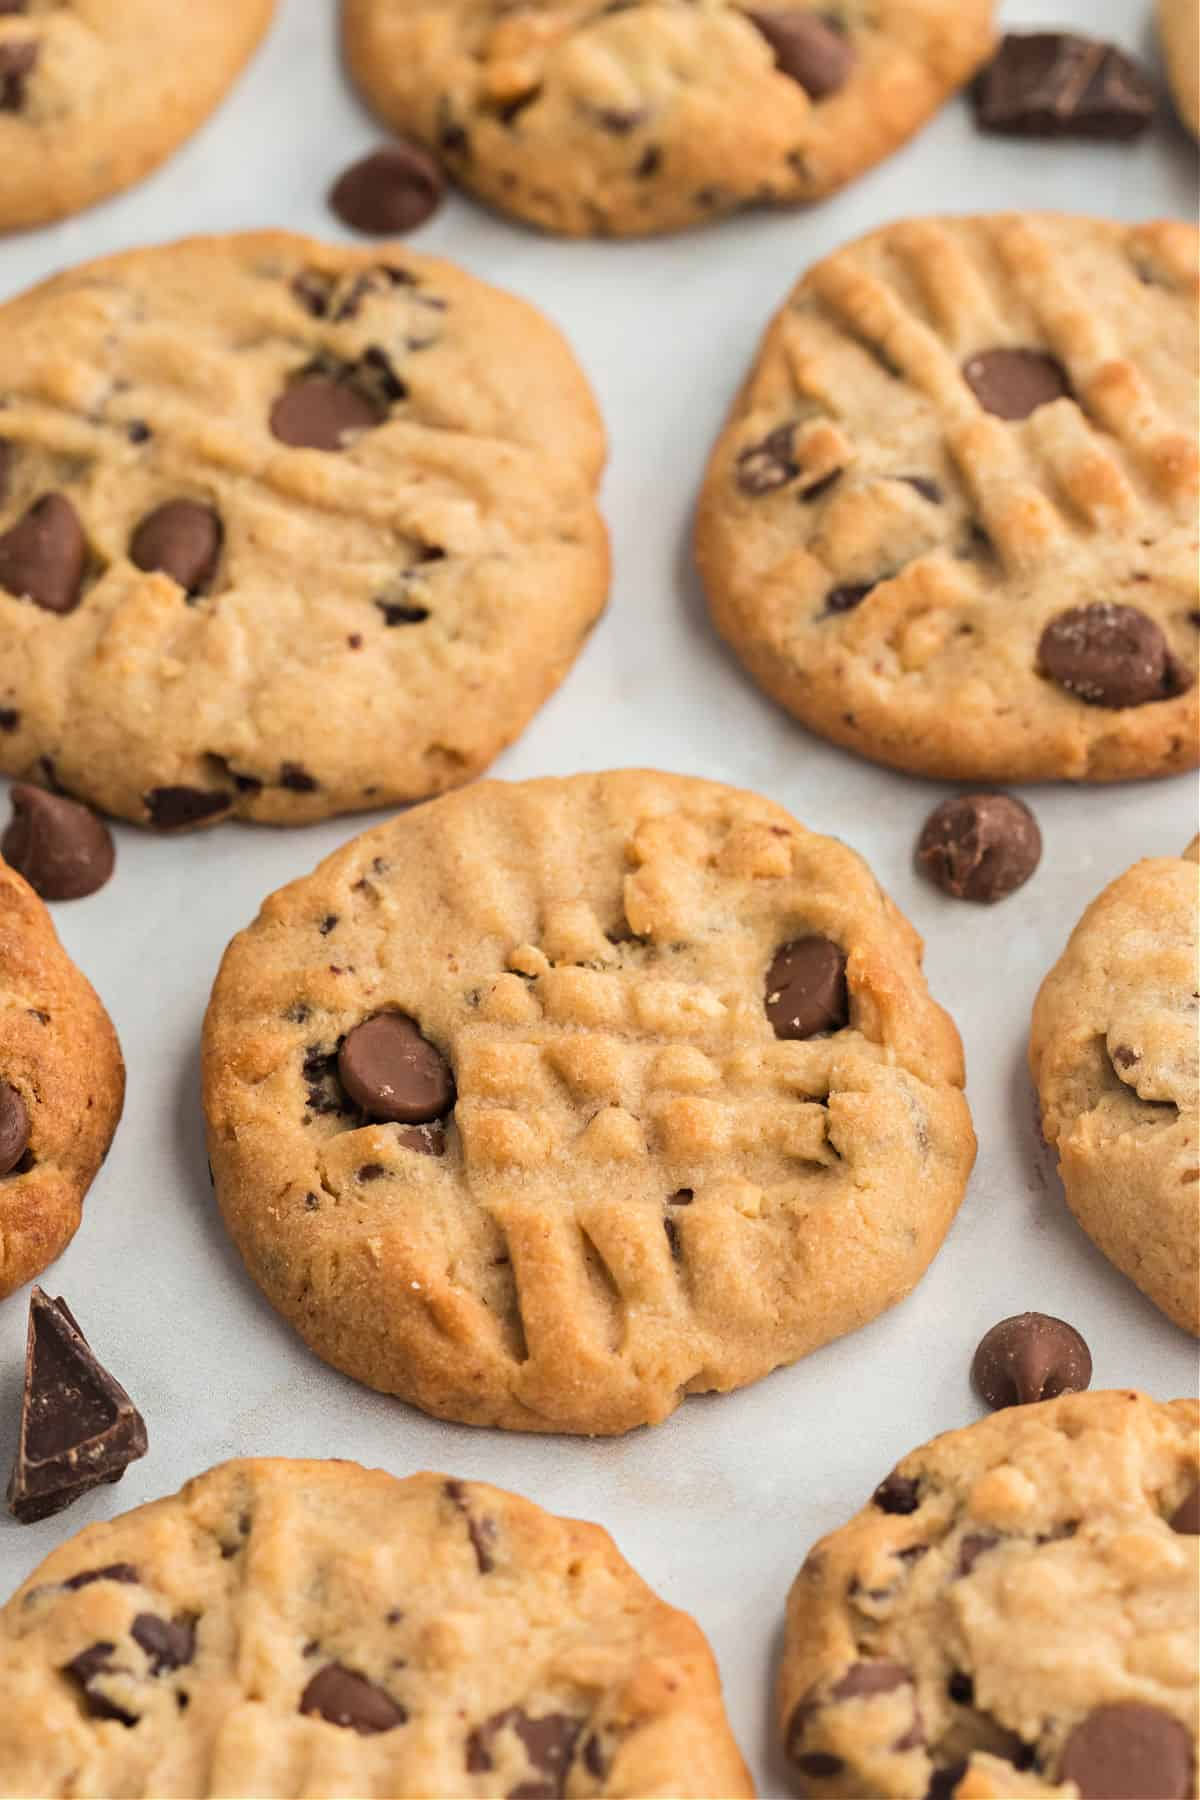 Peanut butter cookies with chocolate chips cooling on a piece of parchment paper.